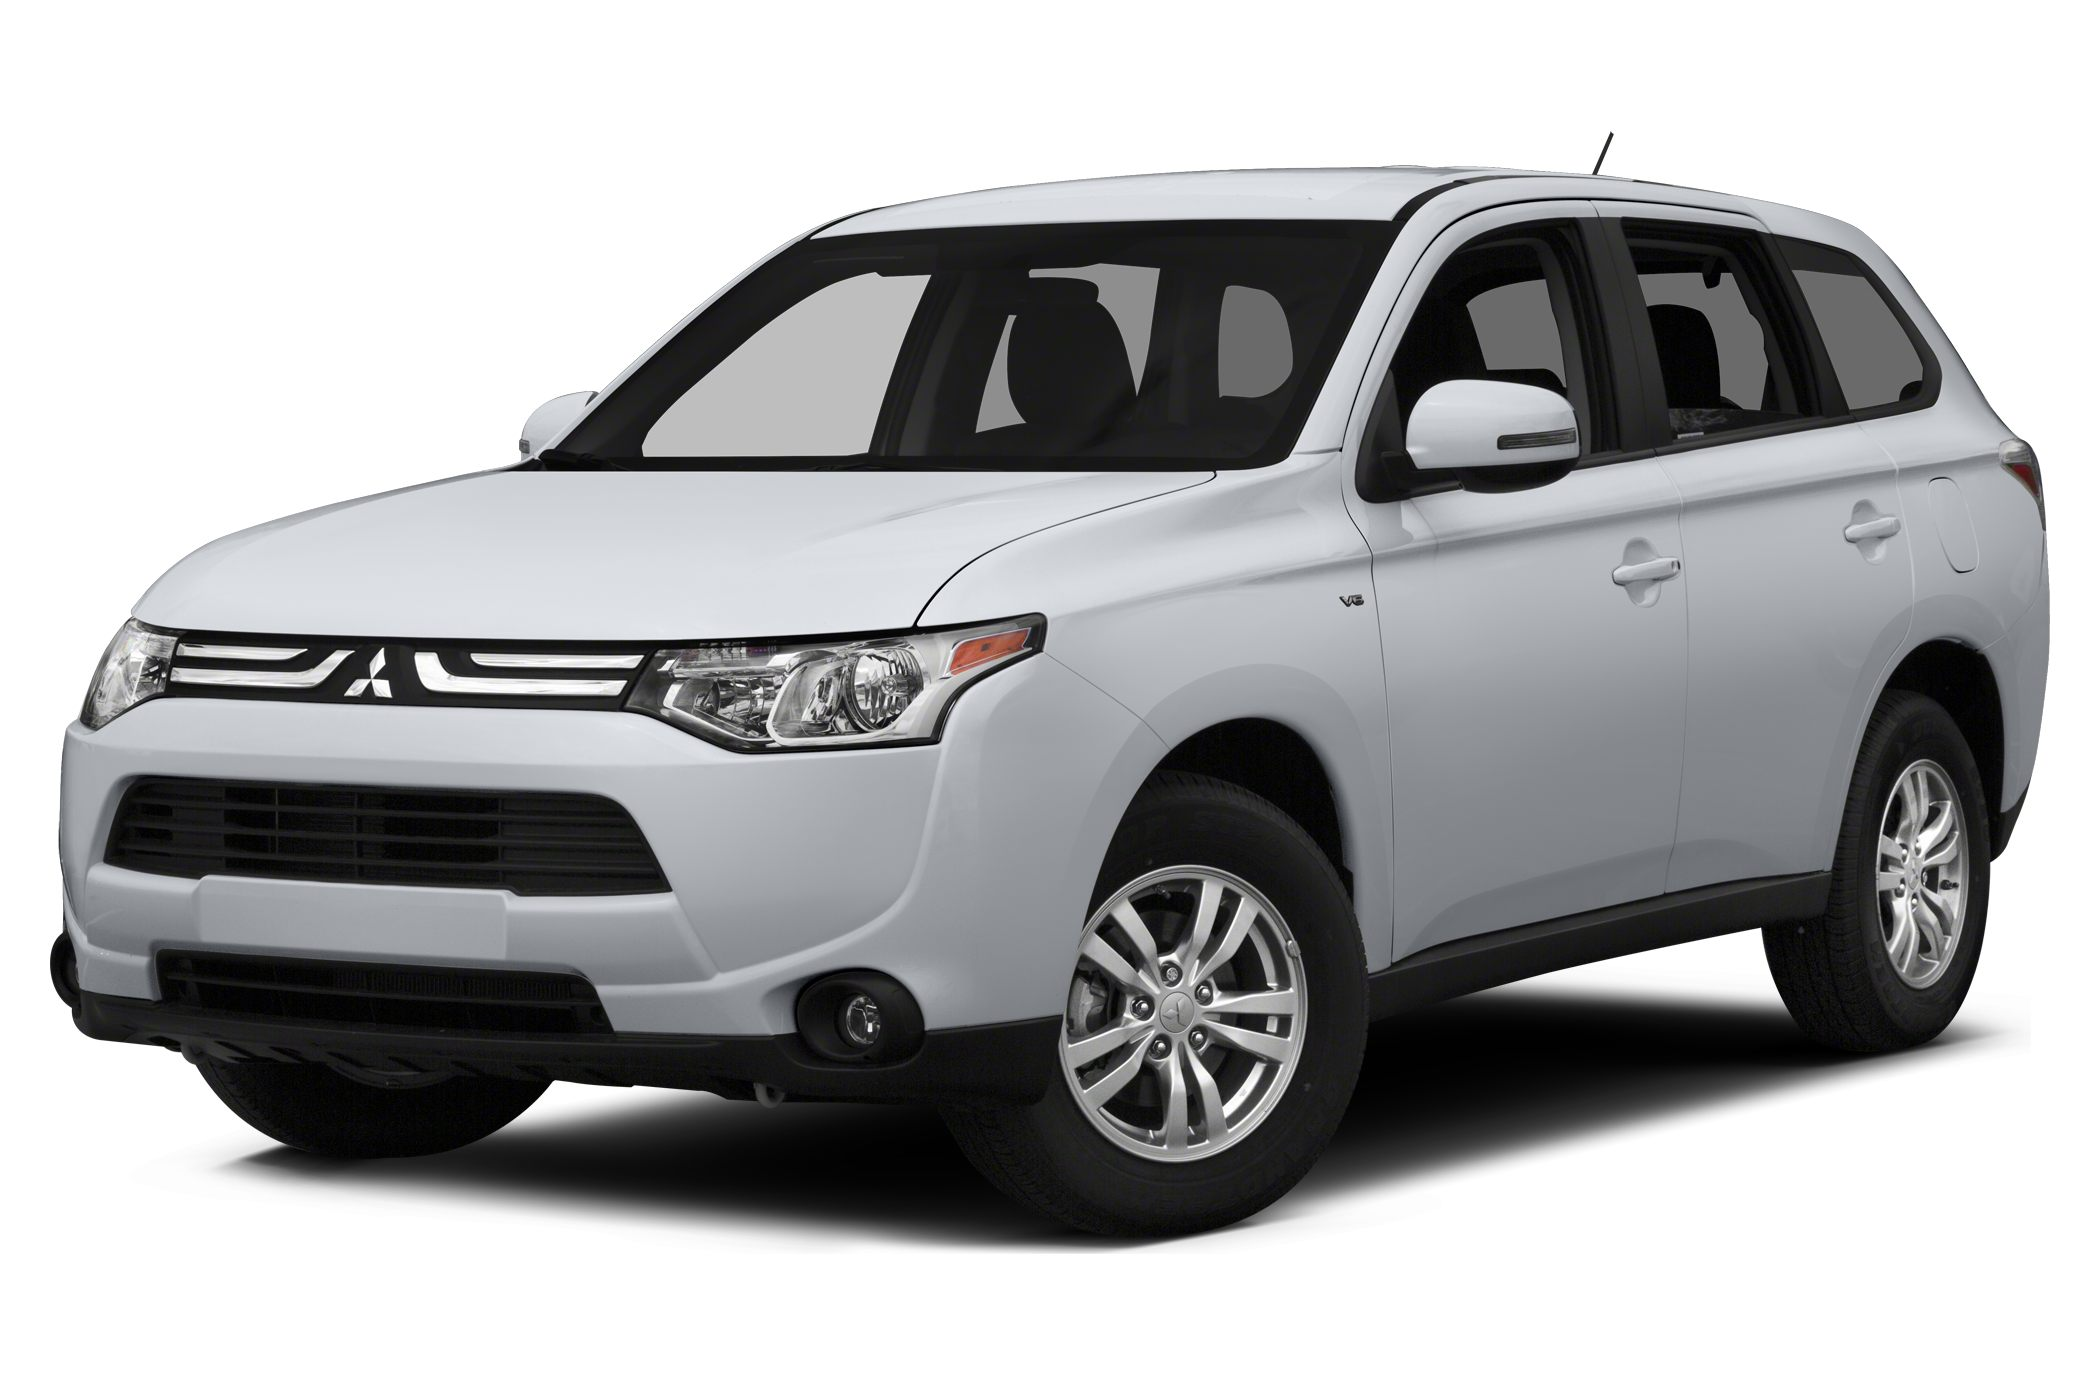 2014 Mitsubishi Outlander ES SUV for sale in Council Bluffs for $22,629 with 23,098 miles.